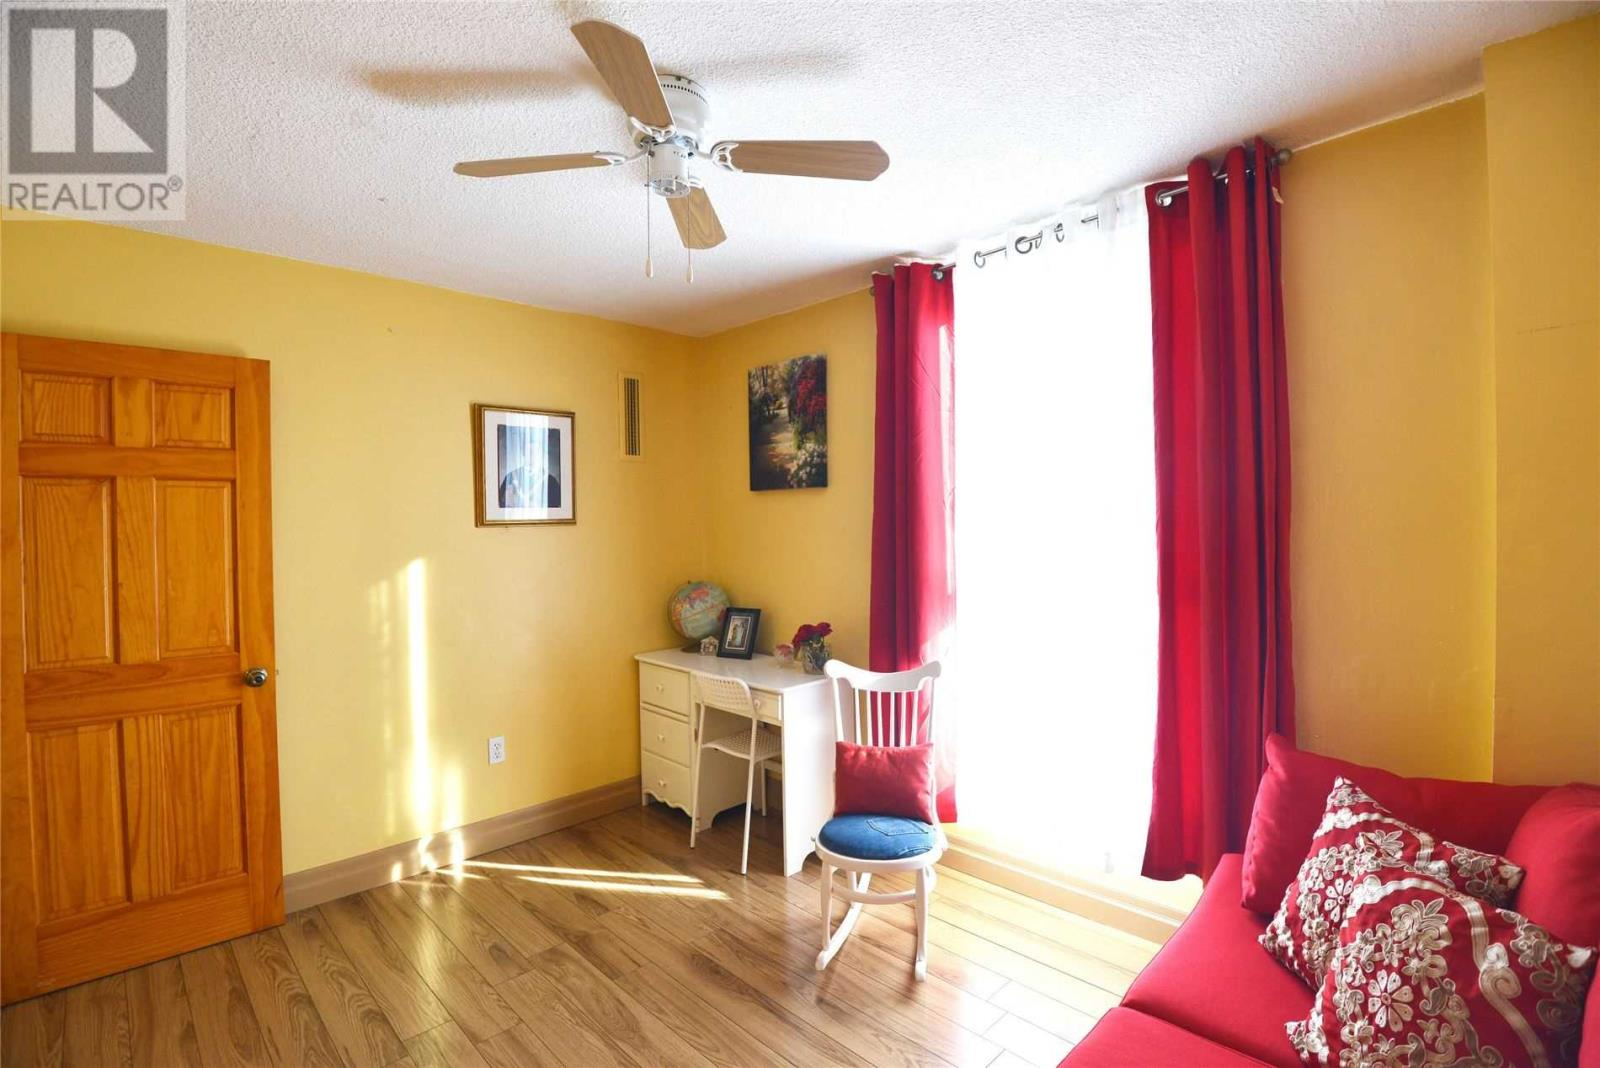 #803 -3170 Kirwin Ave, Mississauga, Ontario  L5A 3R1 - Photo 12 - W4667390